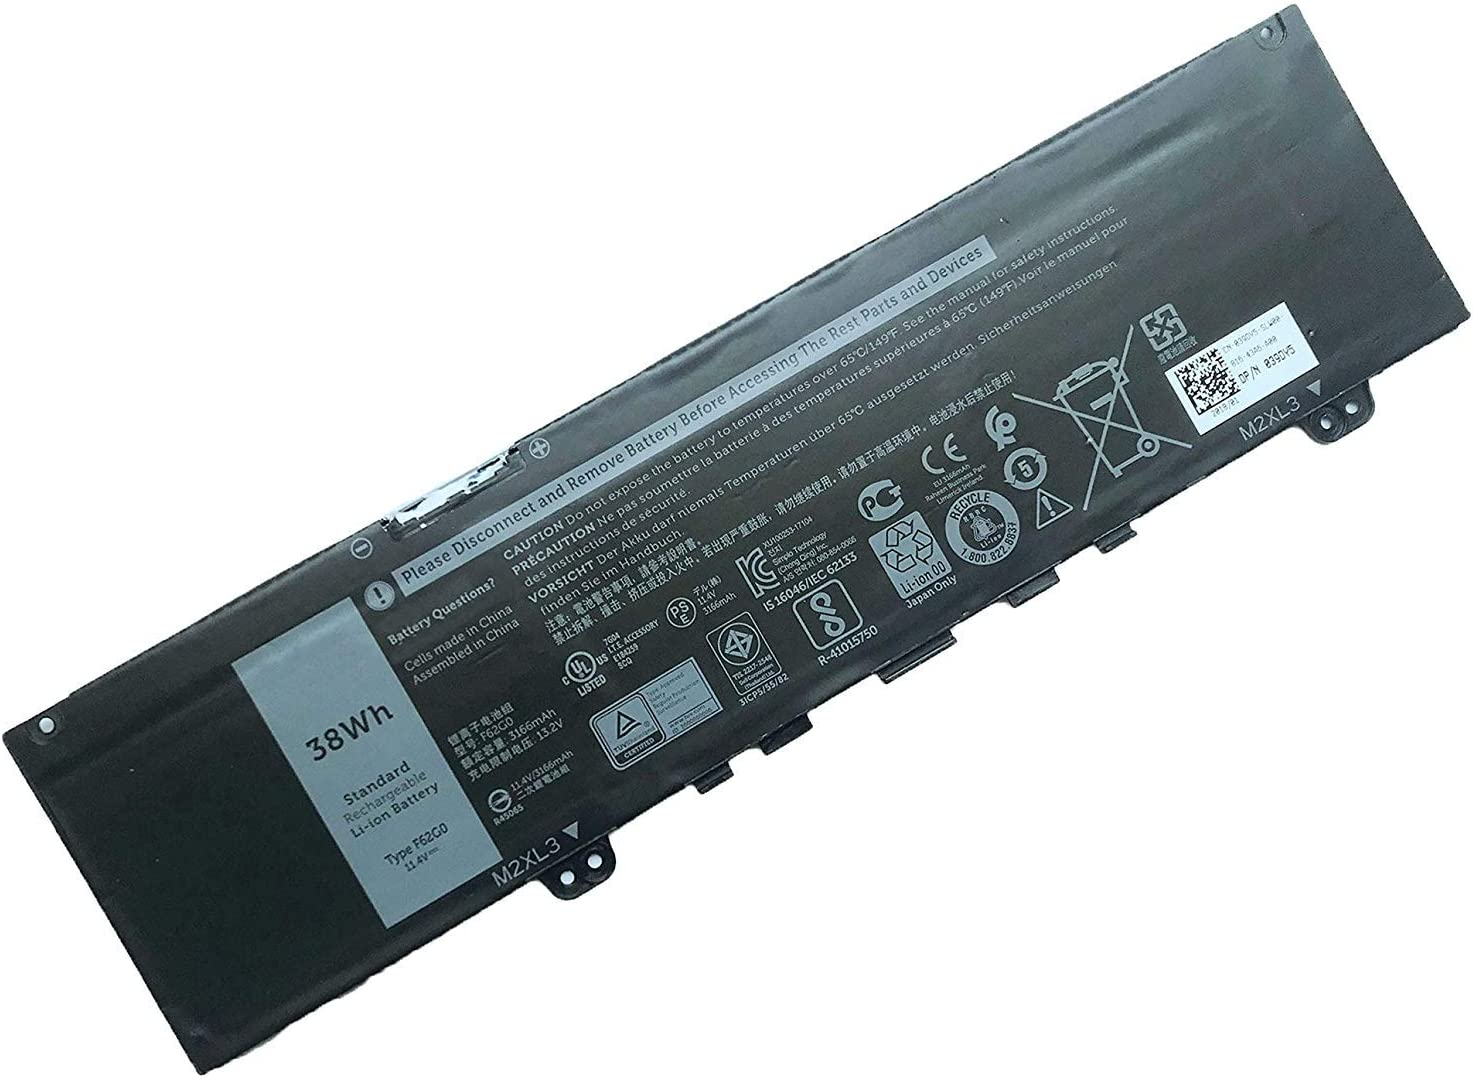 SUNNEAR F62G0 11.4V 38Wh 3166mAh Laptop Battery Replacement for Dell Inspiron 13 5370 7370 7373 7380 7386 Vostro 13 5370 D1505G Series Notebook F62GO RPJC3 39DY5